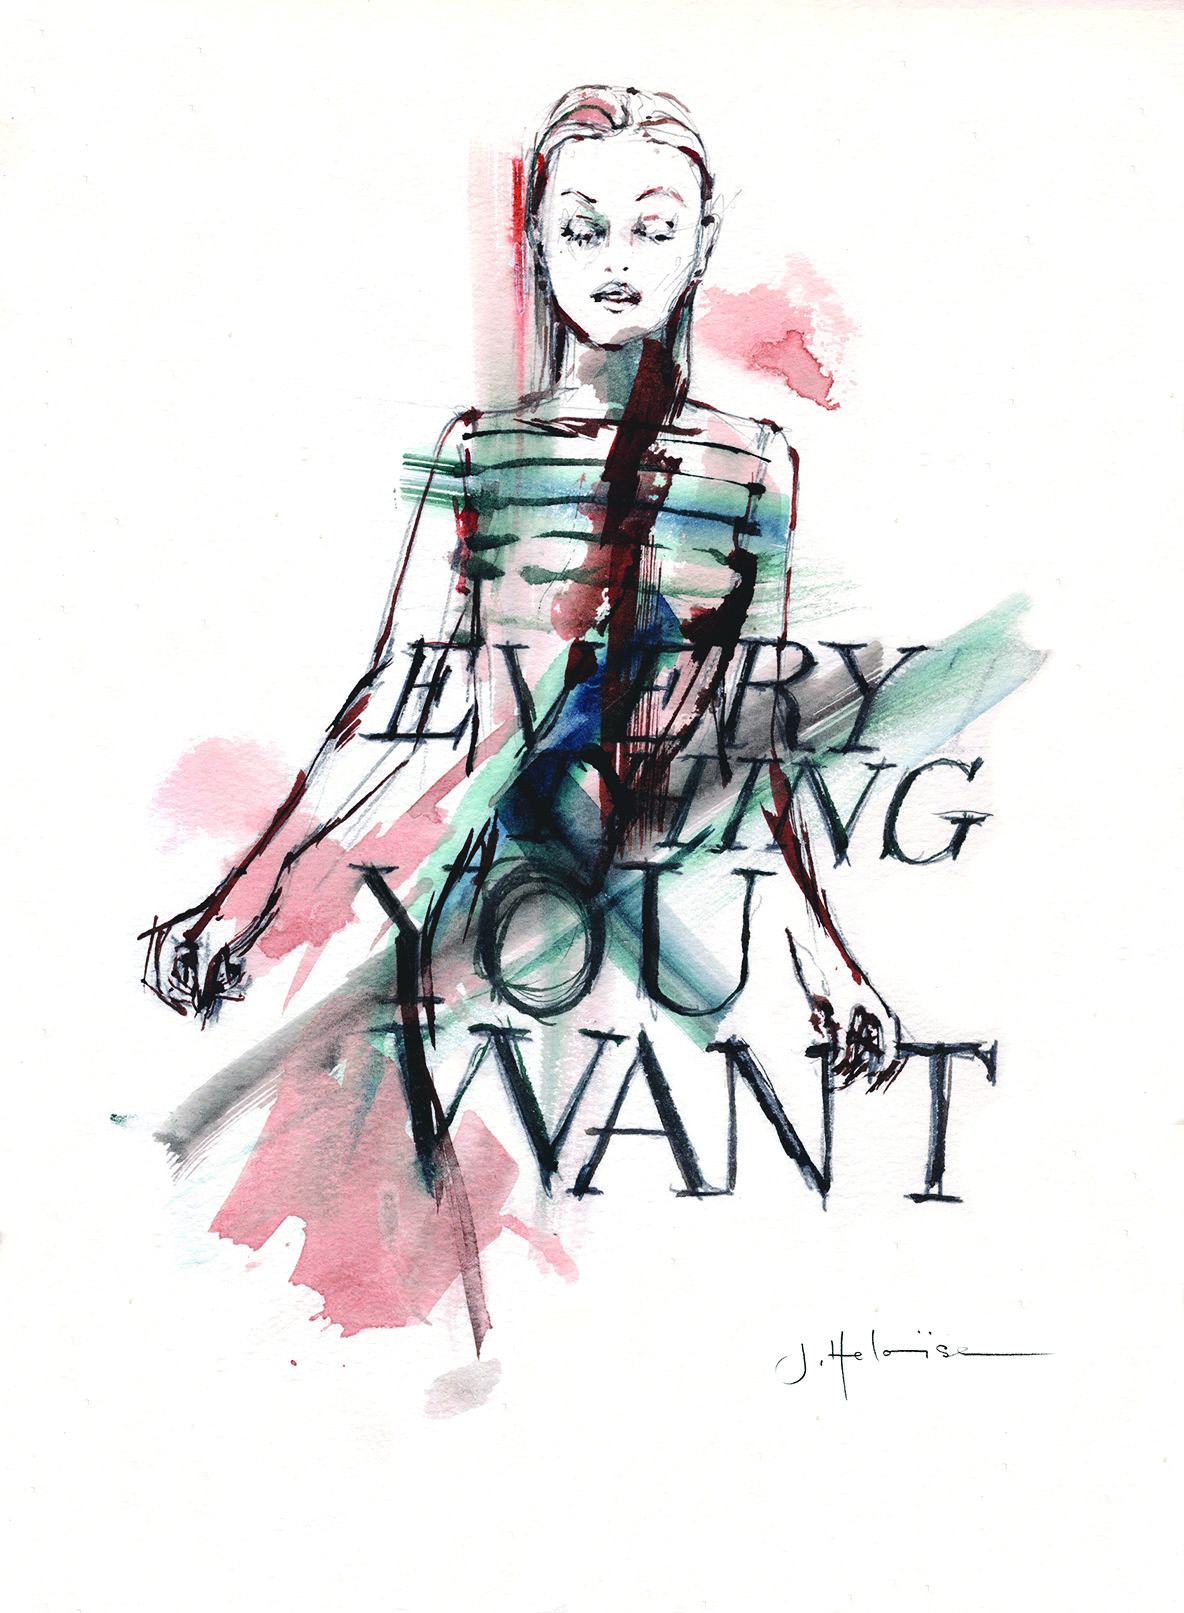 Everything You Want, (from Fashion Faces series)